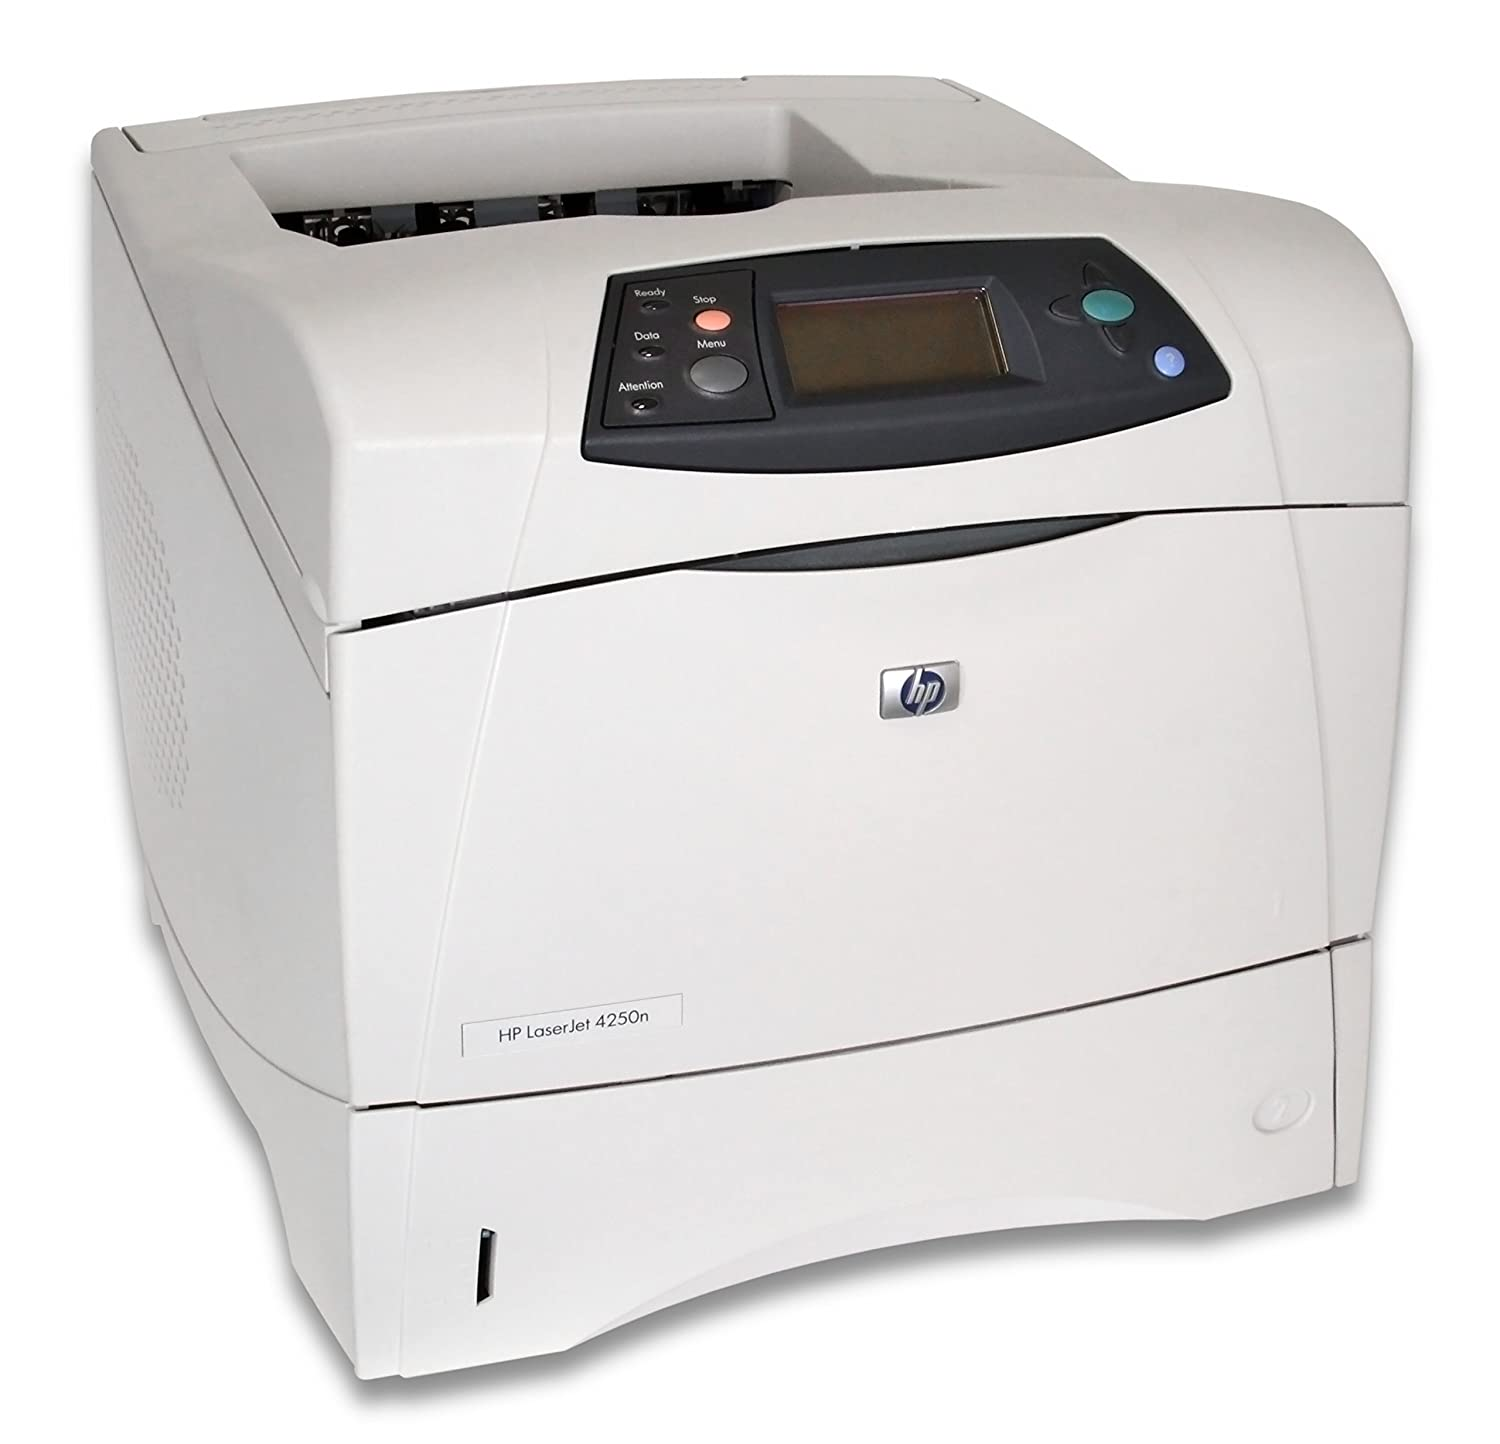 Amazon.com: HP LaserJet 4250 N monocromo Impresora de red ...